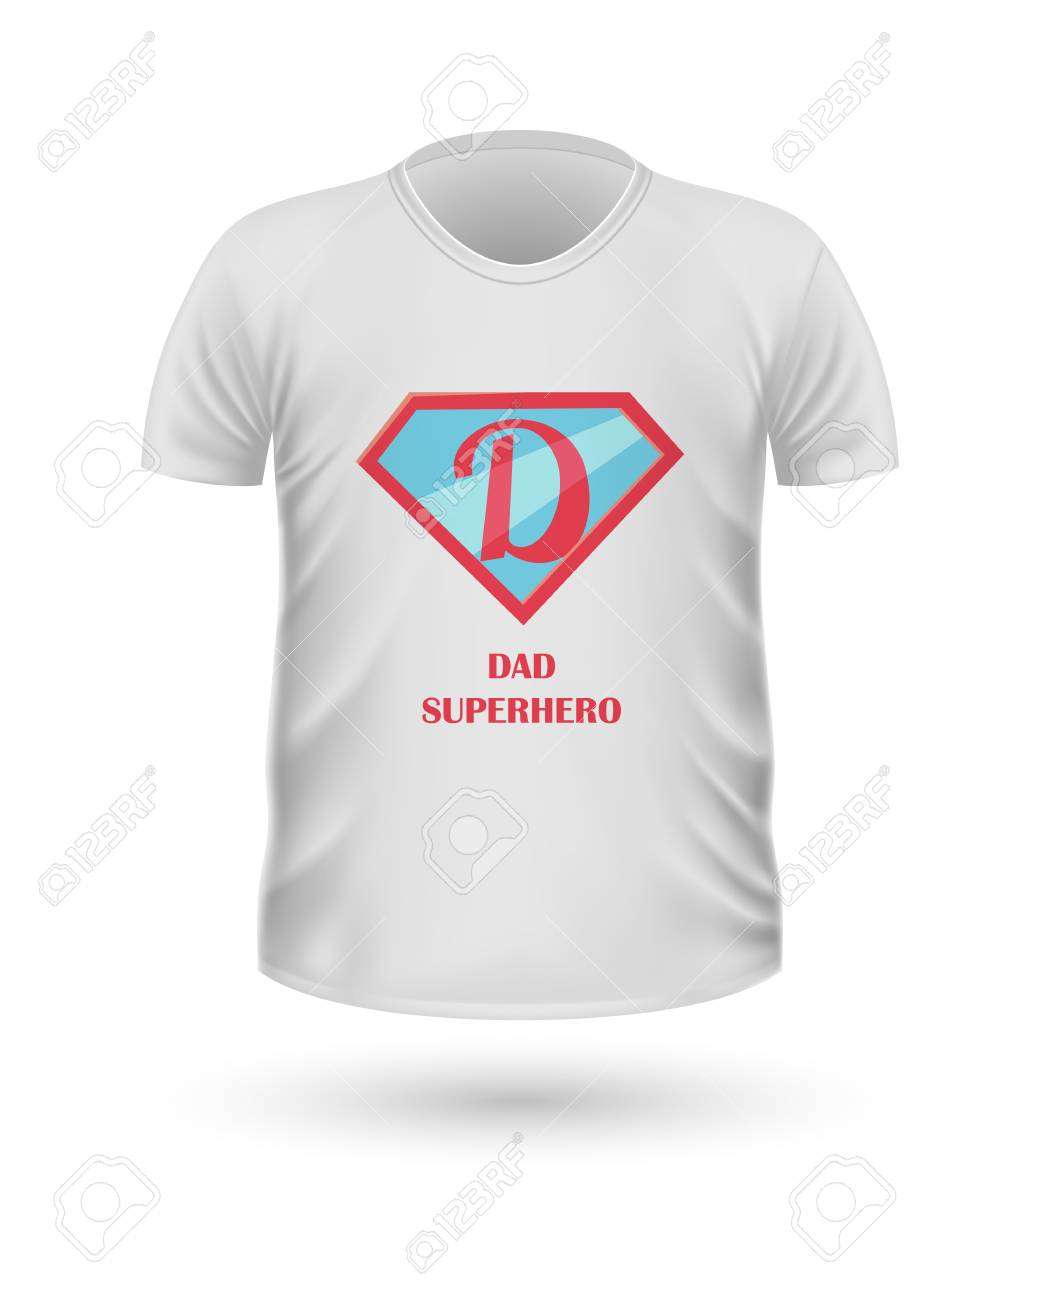 f74c50fb Dad Superhero T-shirt Front View Isolated. Vector Stock Vector - 70791013